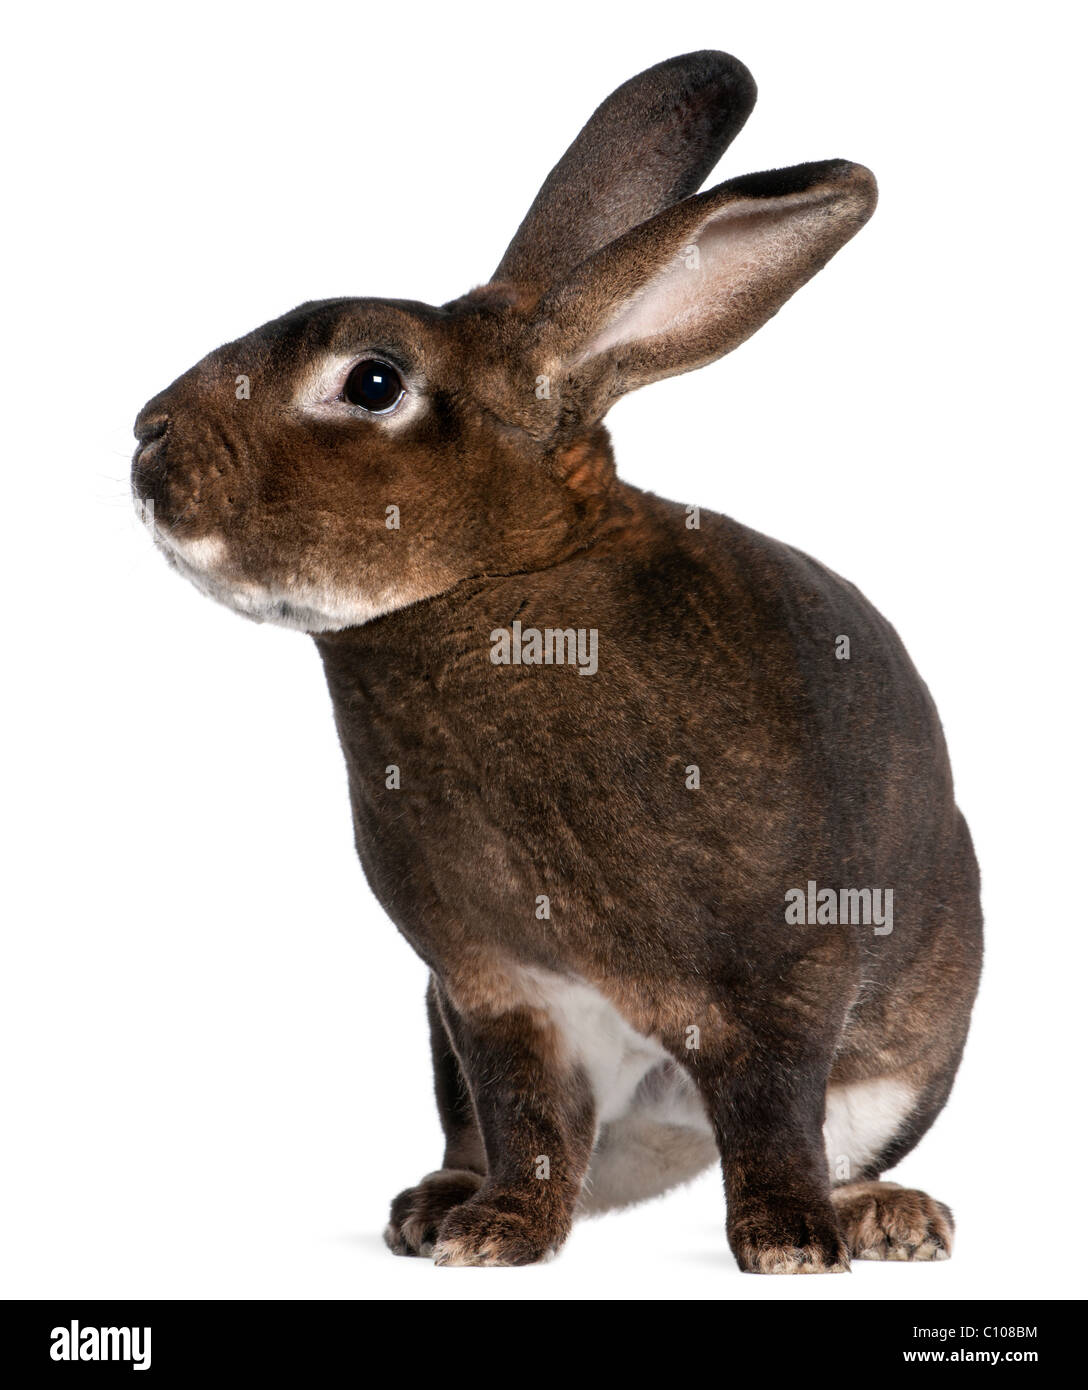 Castor Rex rabbit in front of white background - Stock Image